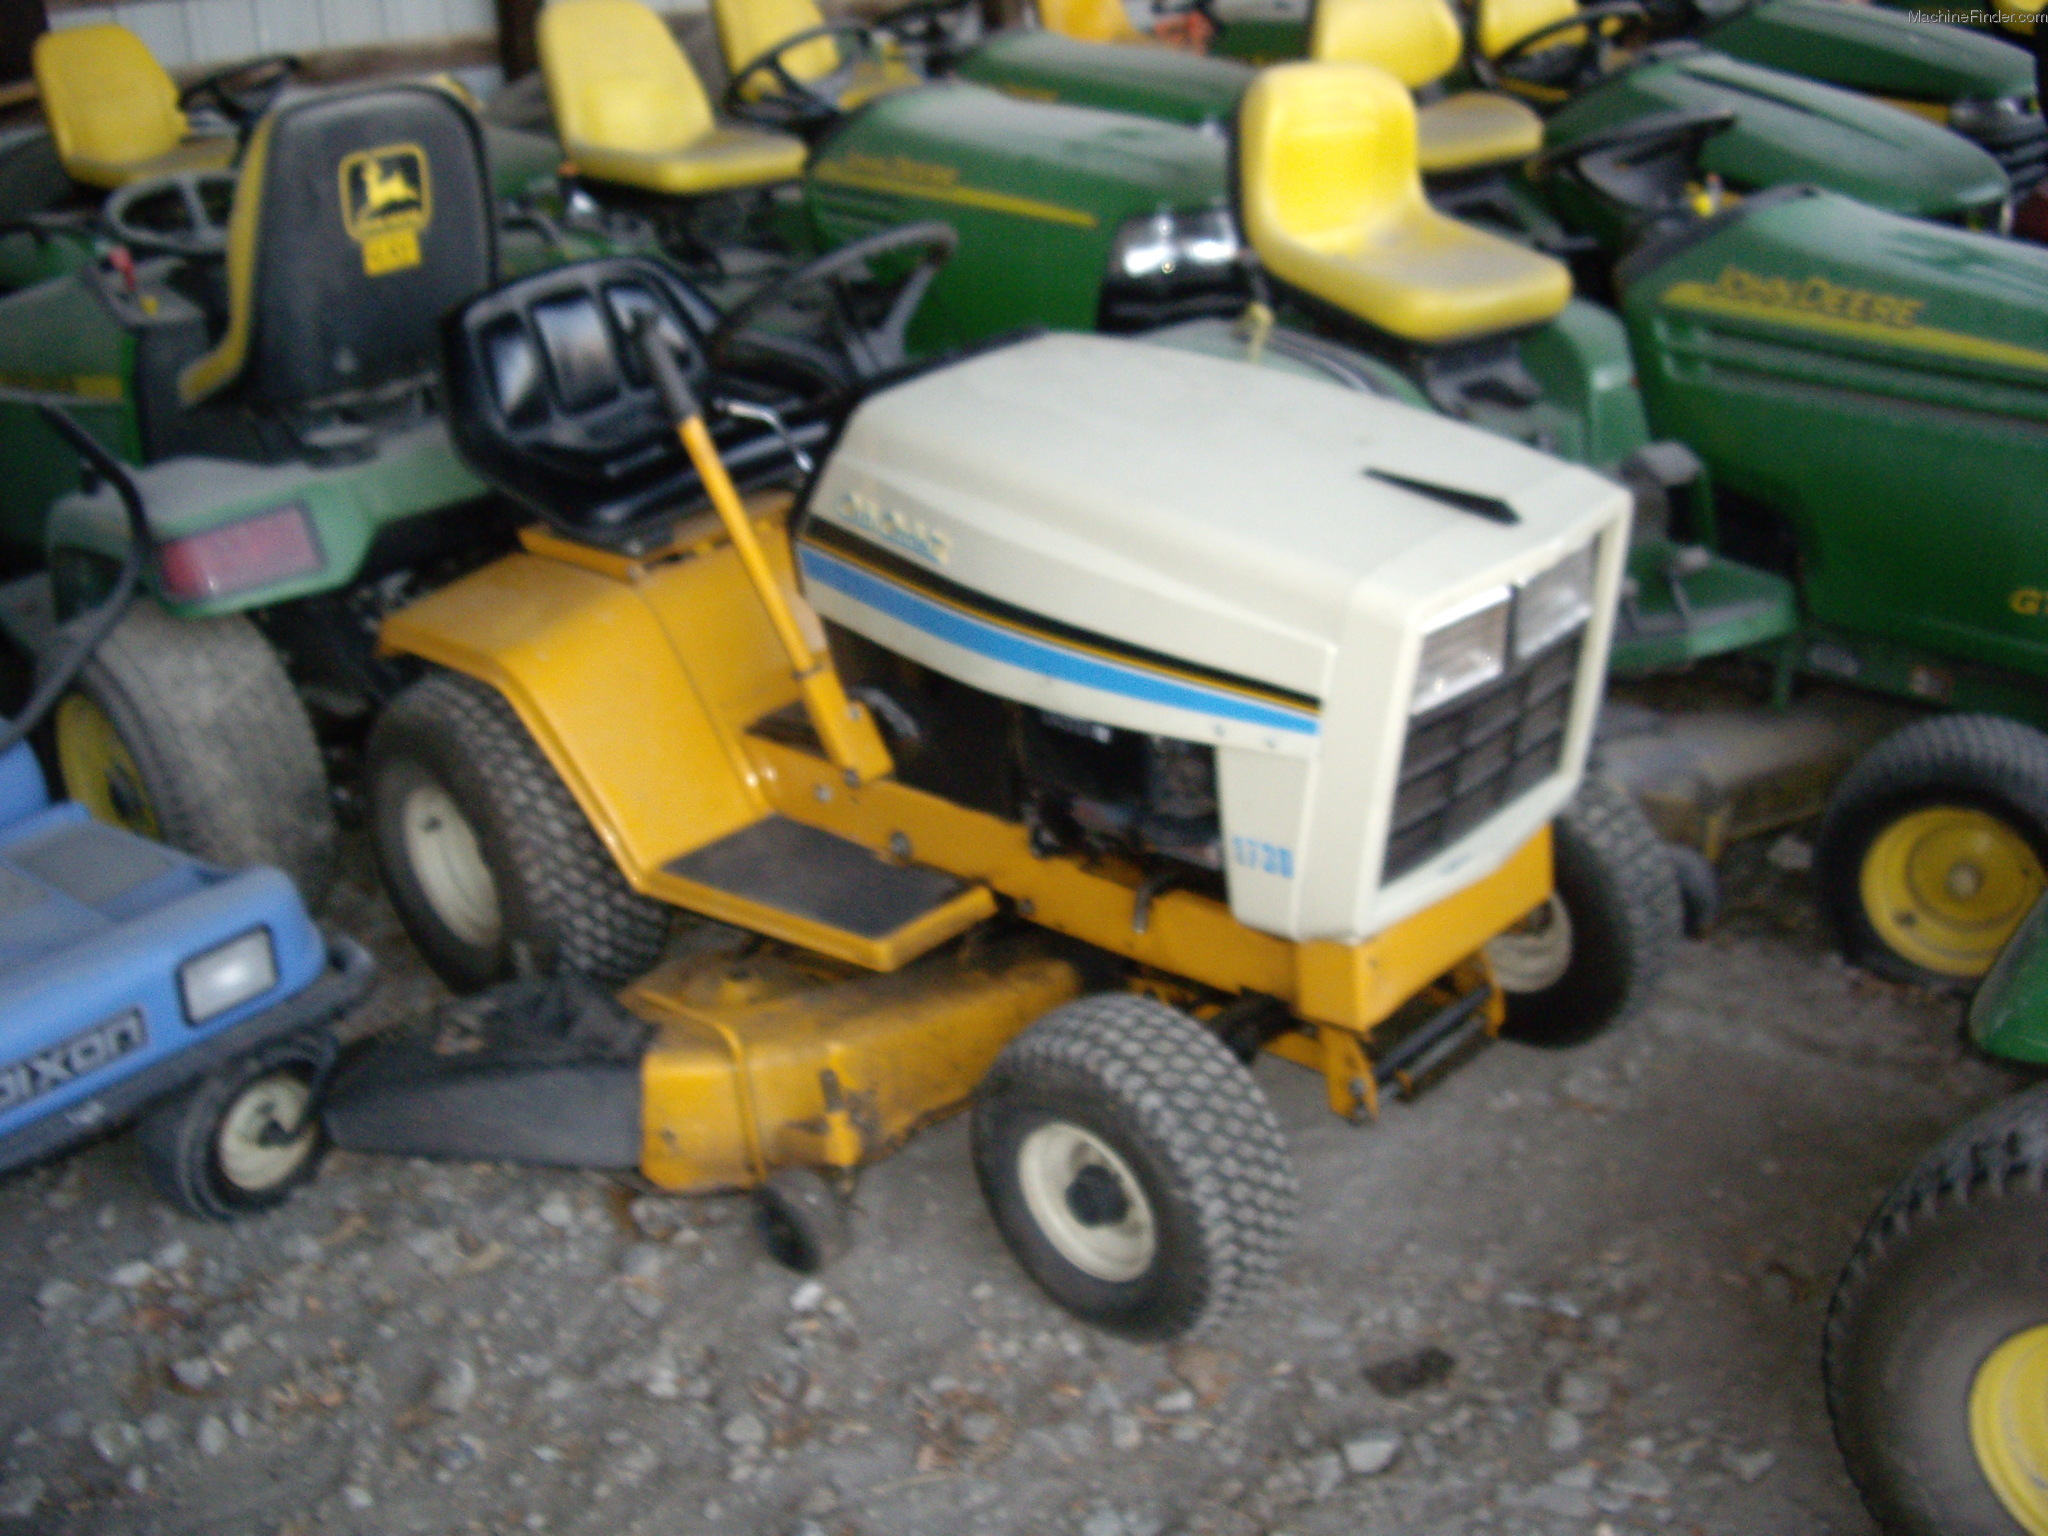 Cub Cadet 169 Lawn Tractor Tractors 1450 Schematic 1730 Machinefinder My News Faq Help Financing Certified